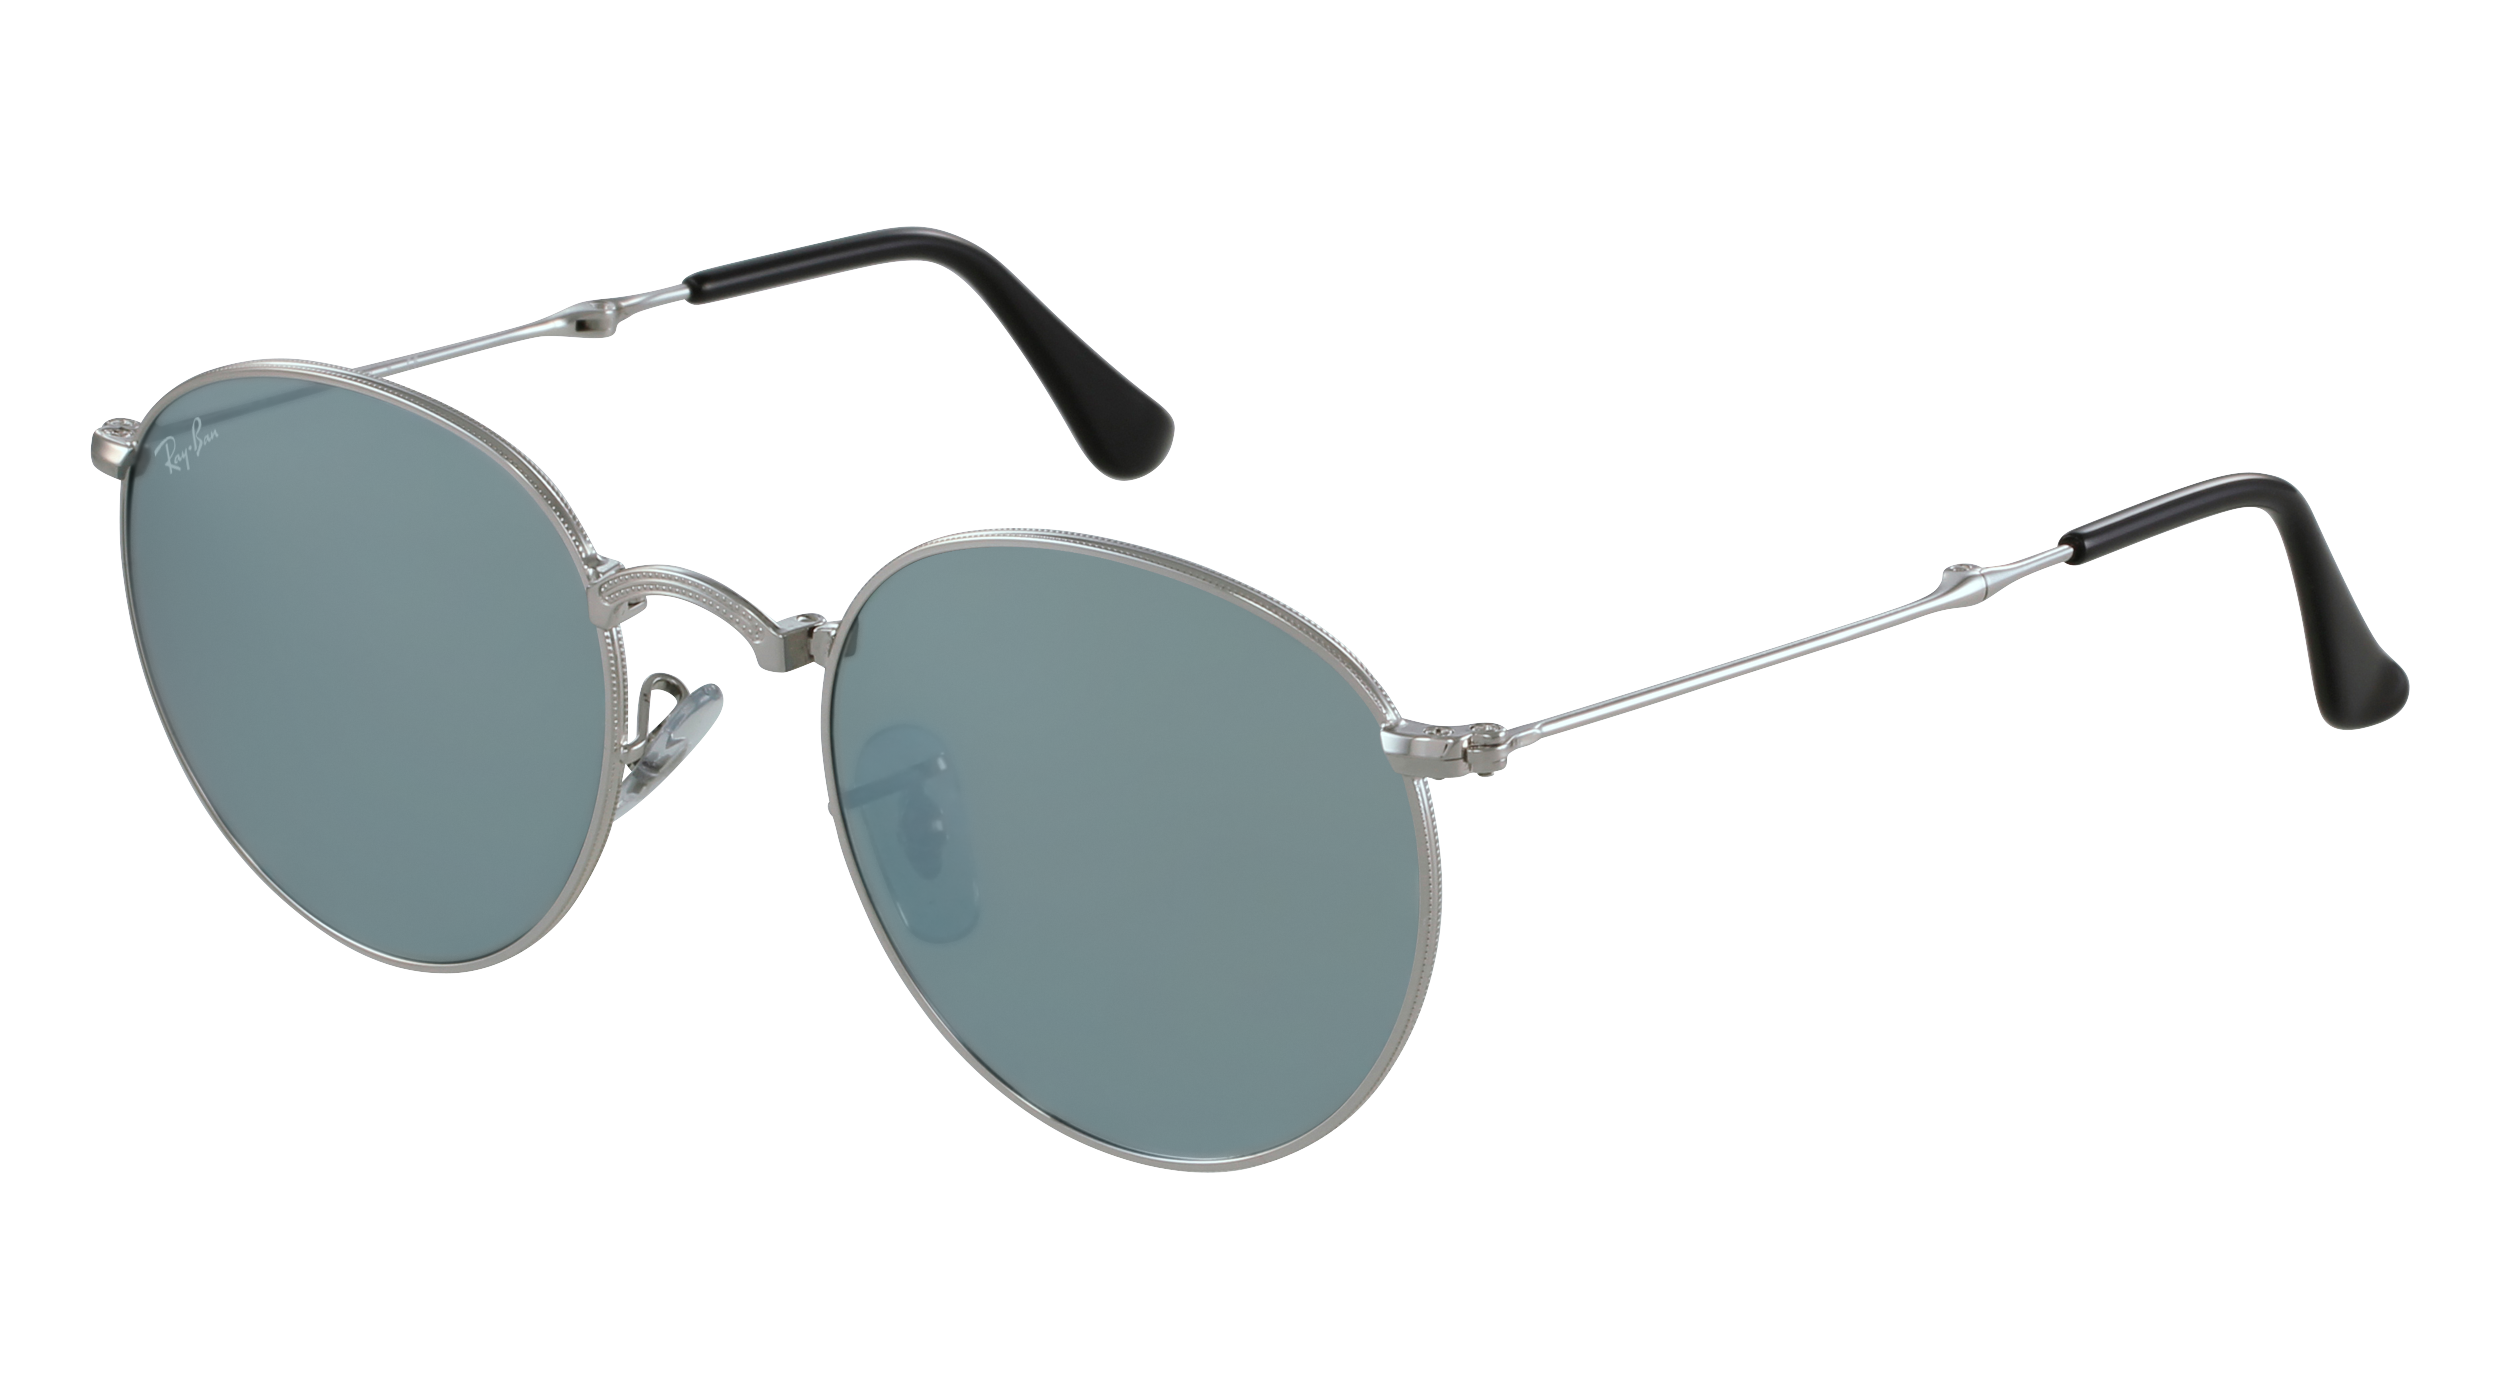 Ray-Ban RB3532-S-00330-50-20-140